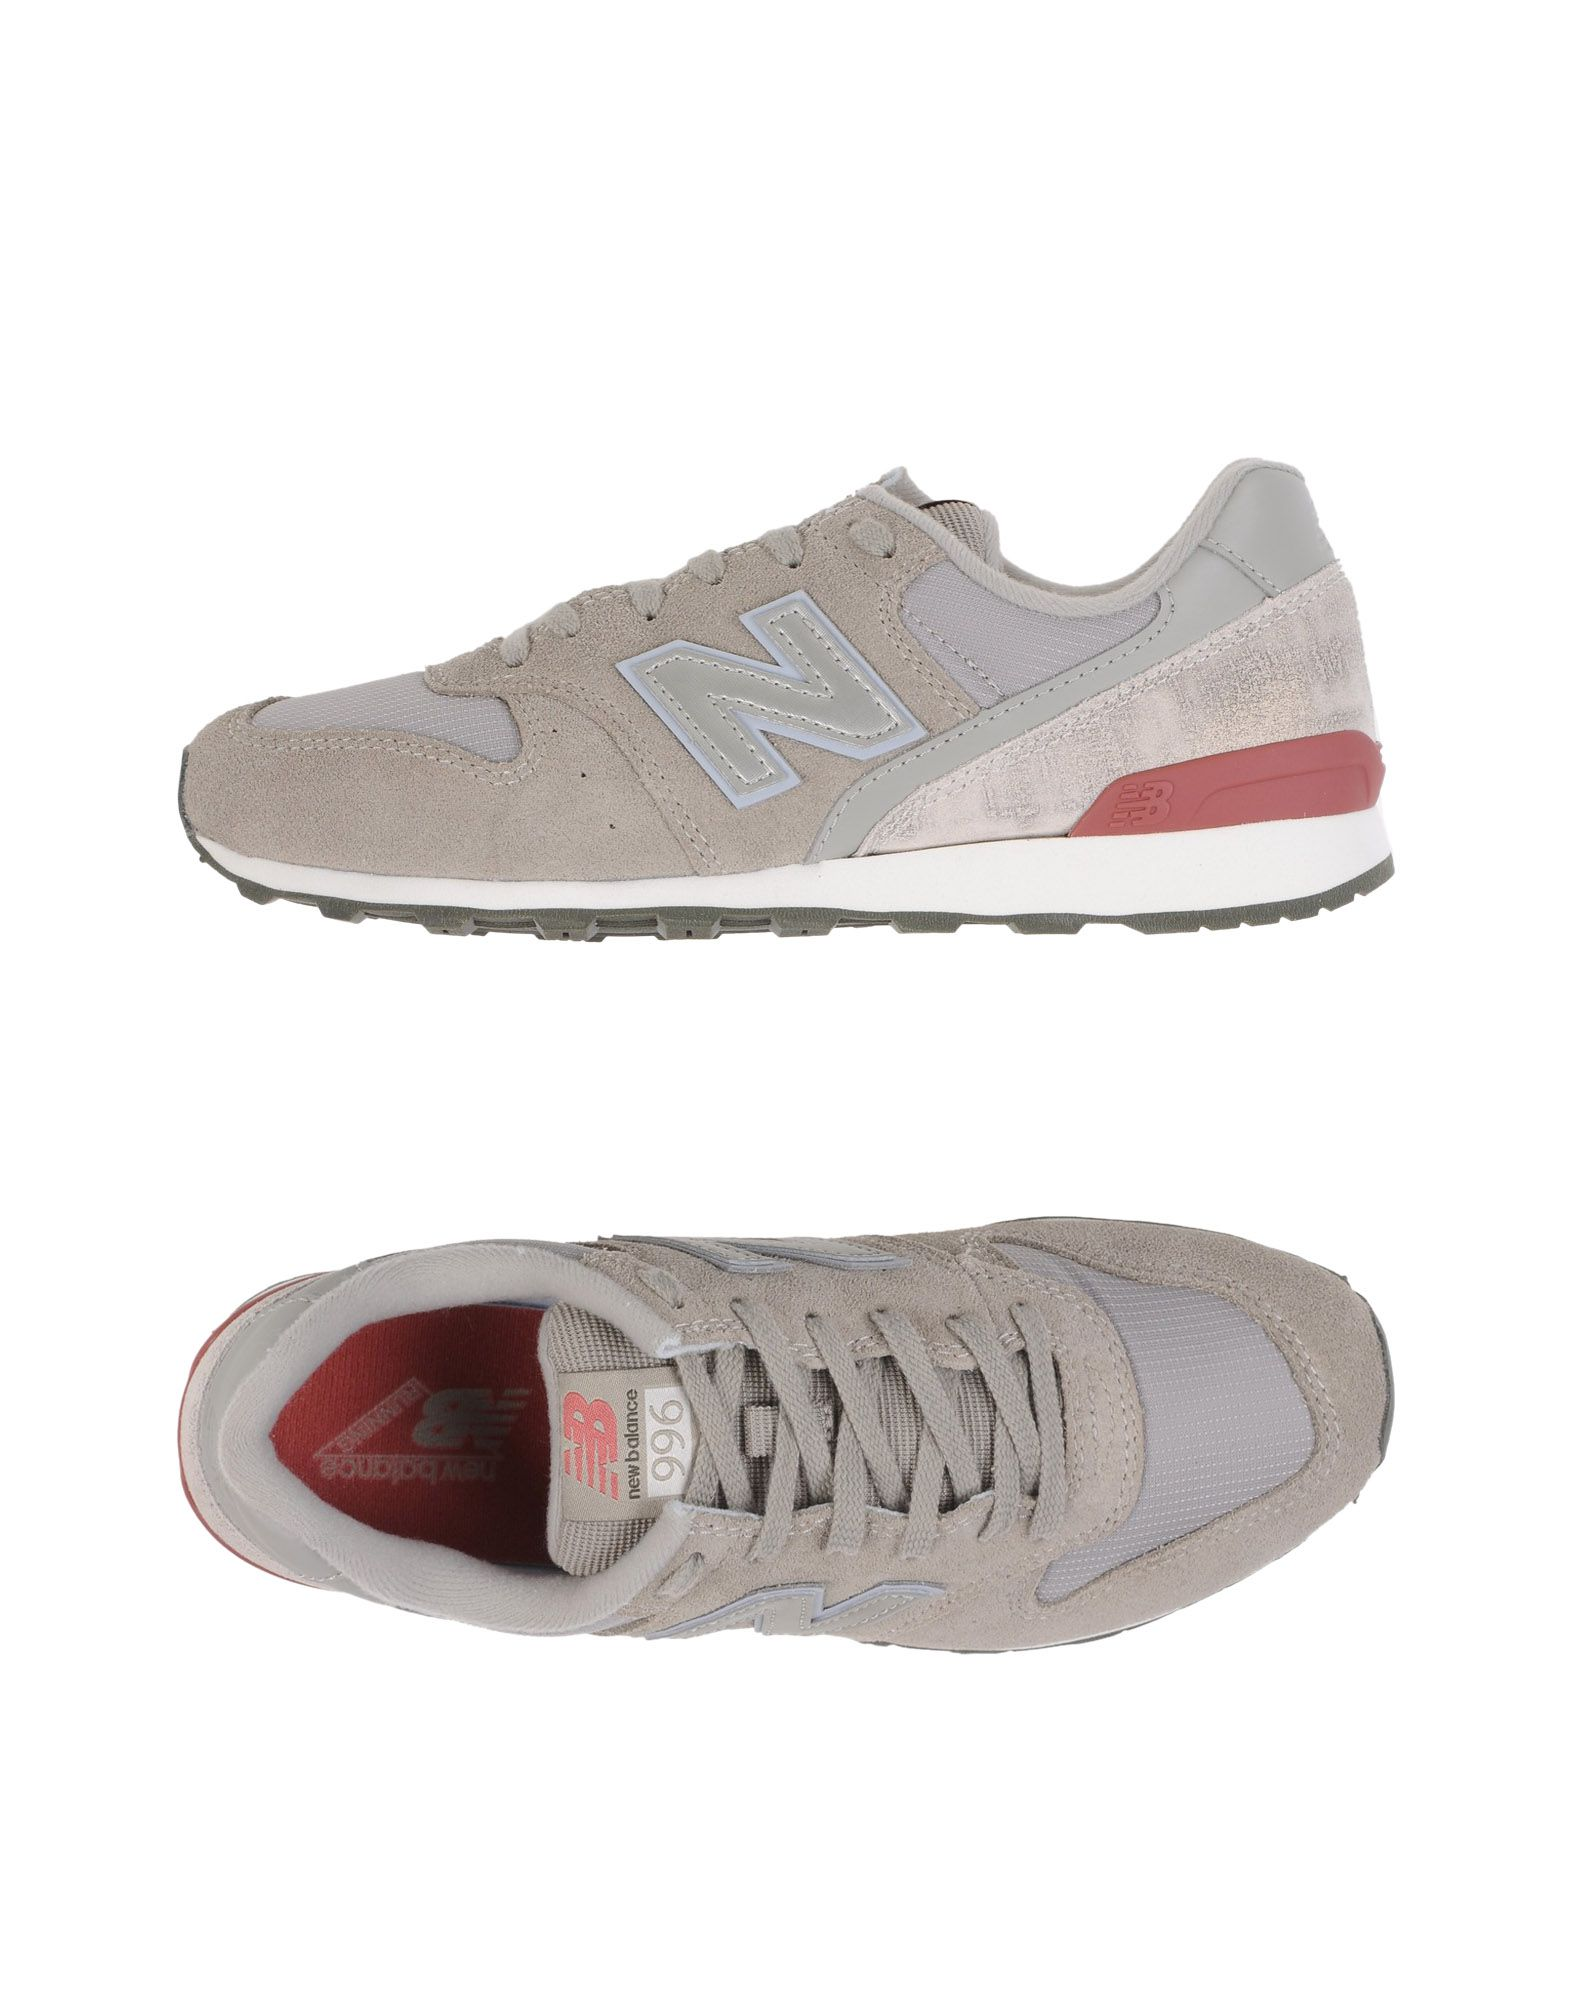 Sneakers New Balance 996 Sophisticated - Femme - Sneakers New Balance sur